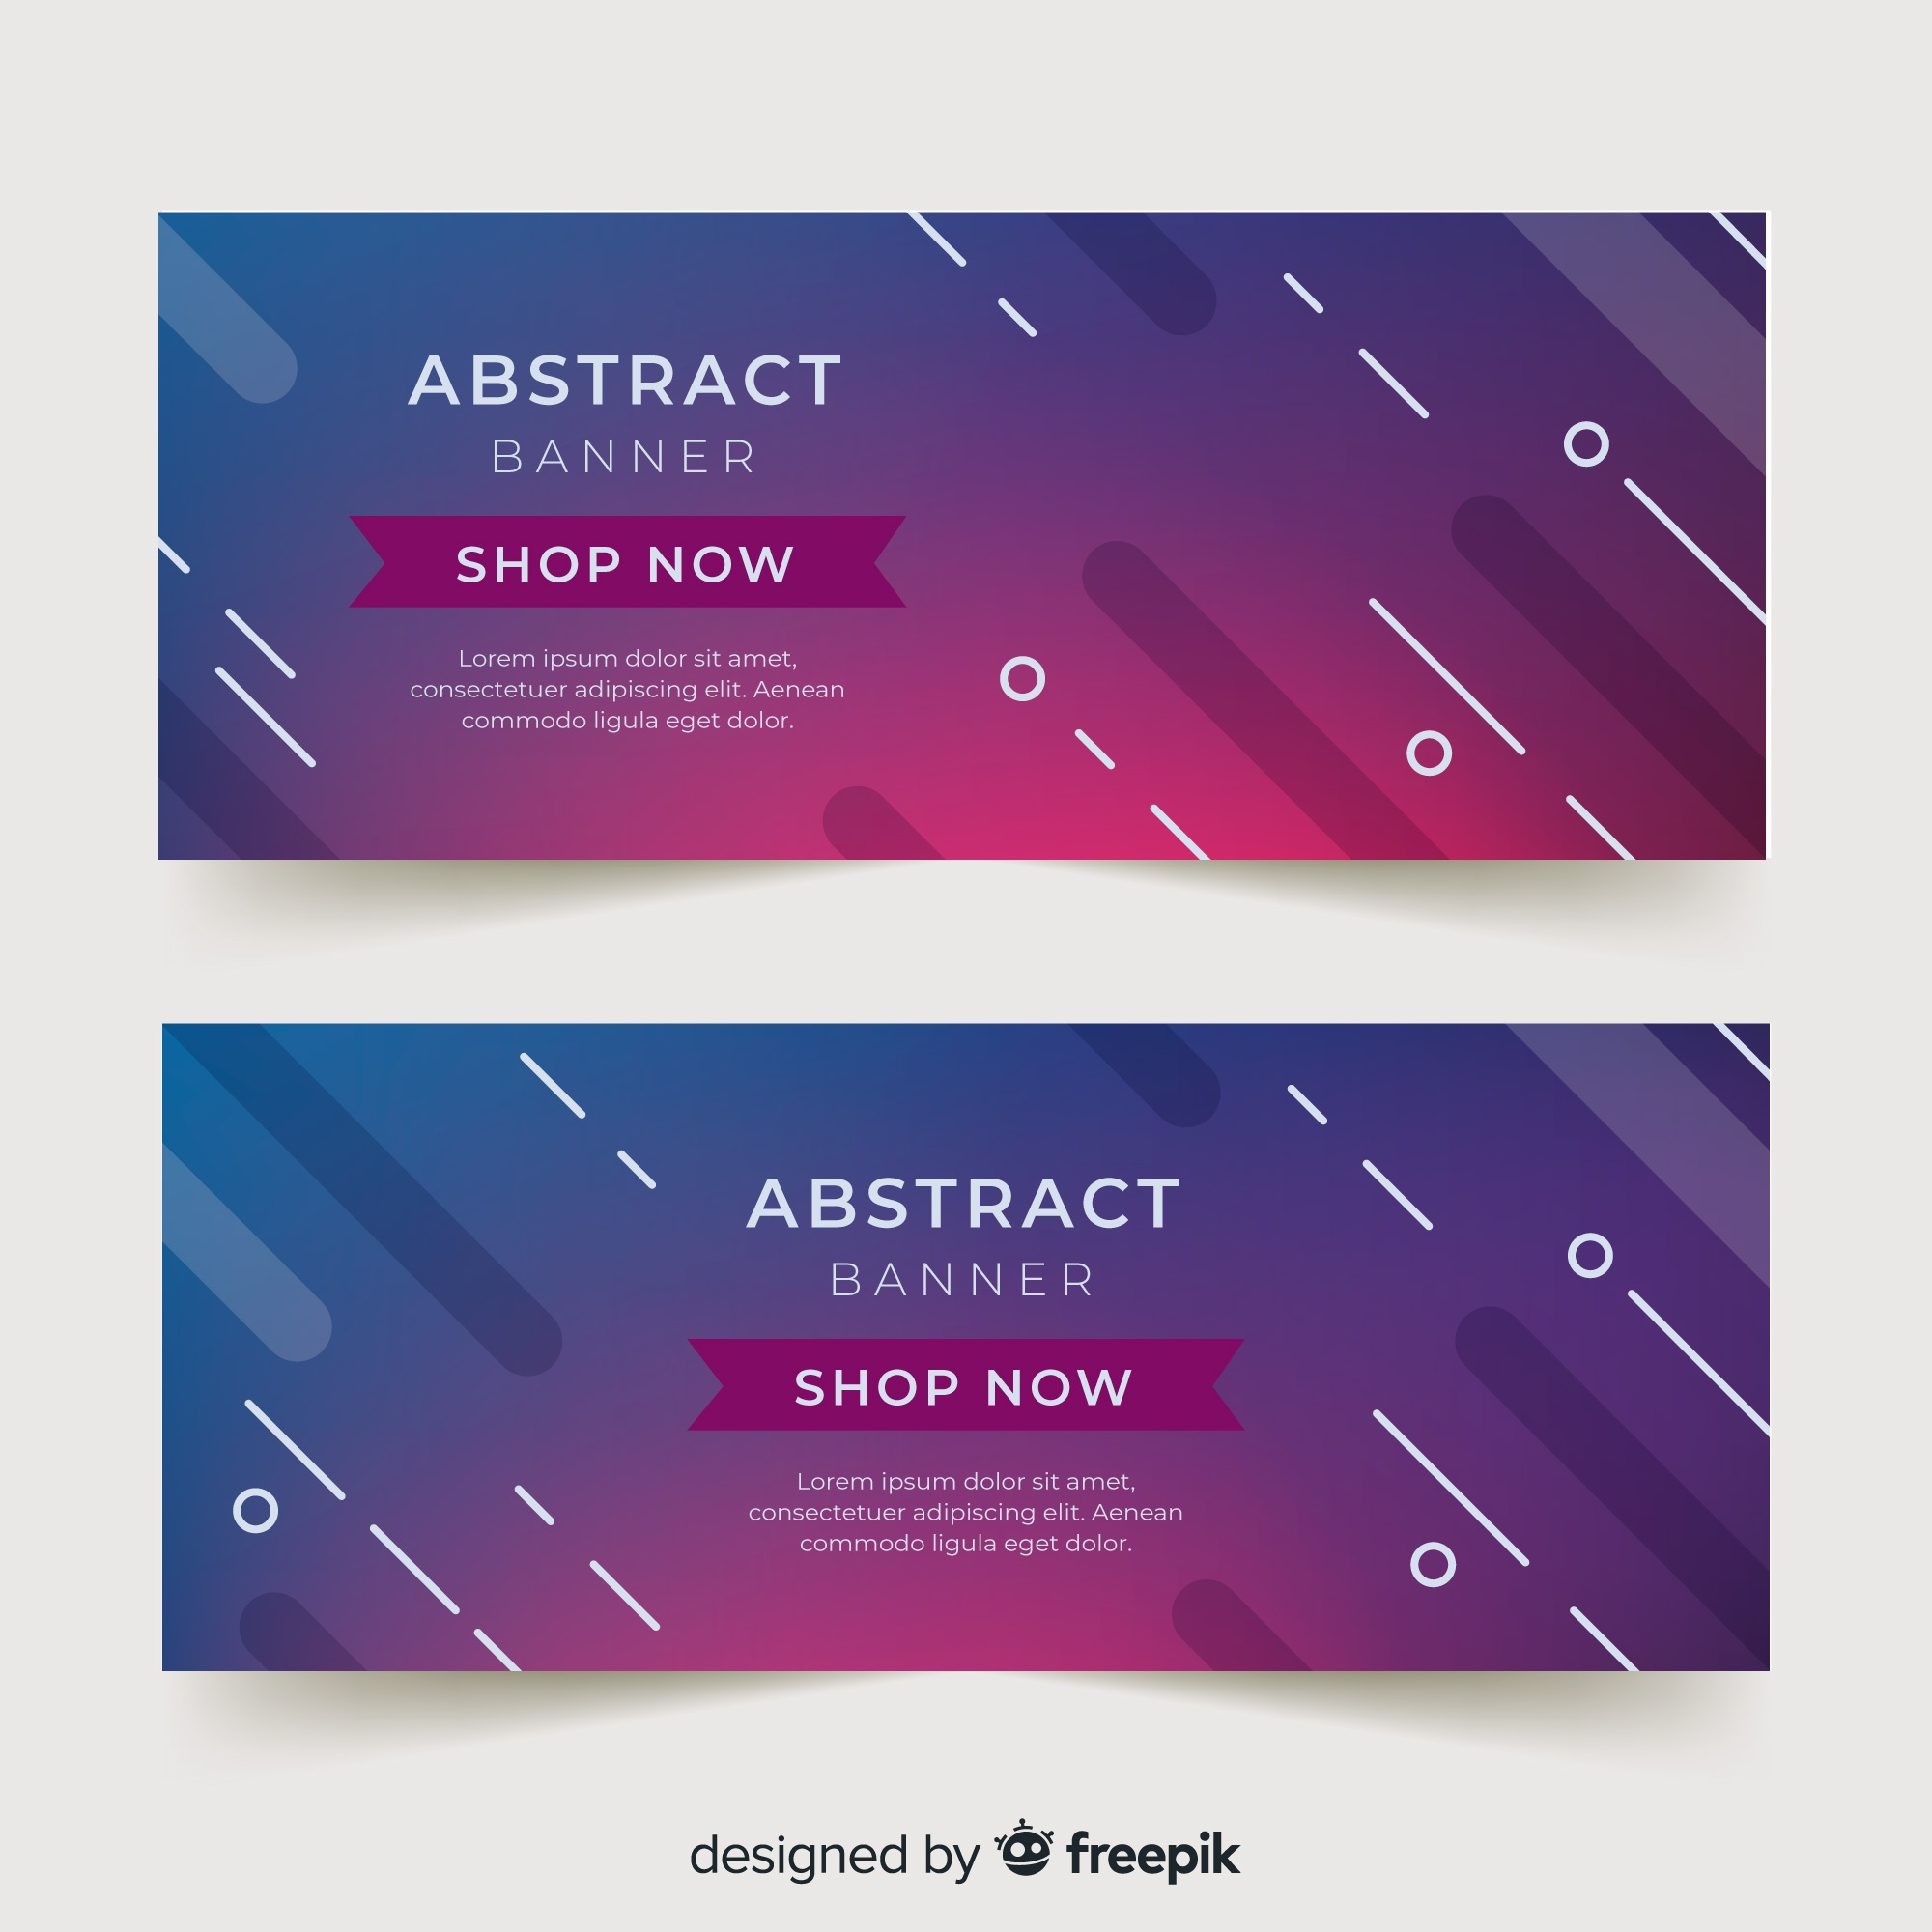 Abstract banner template